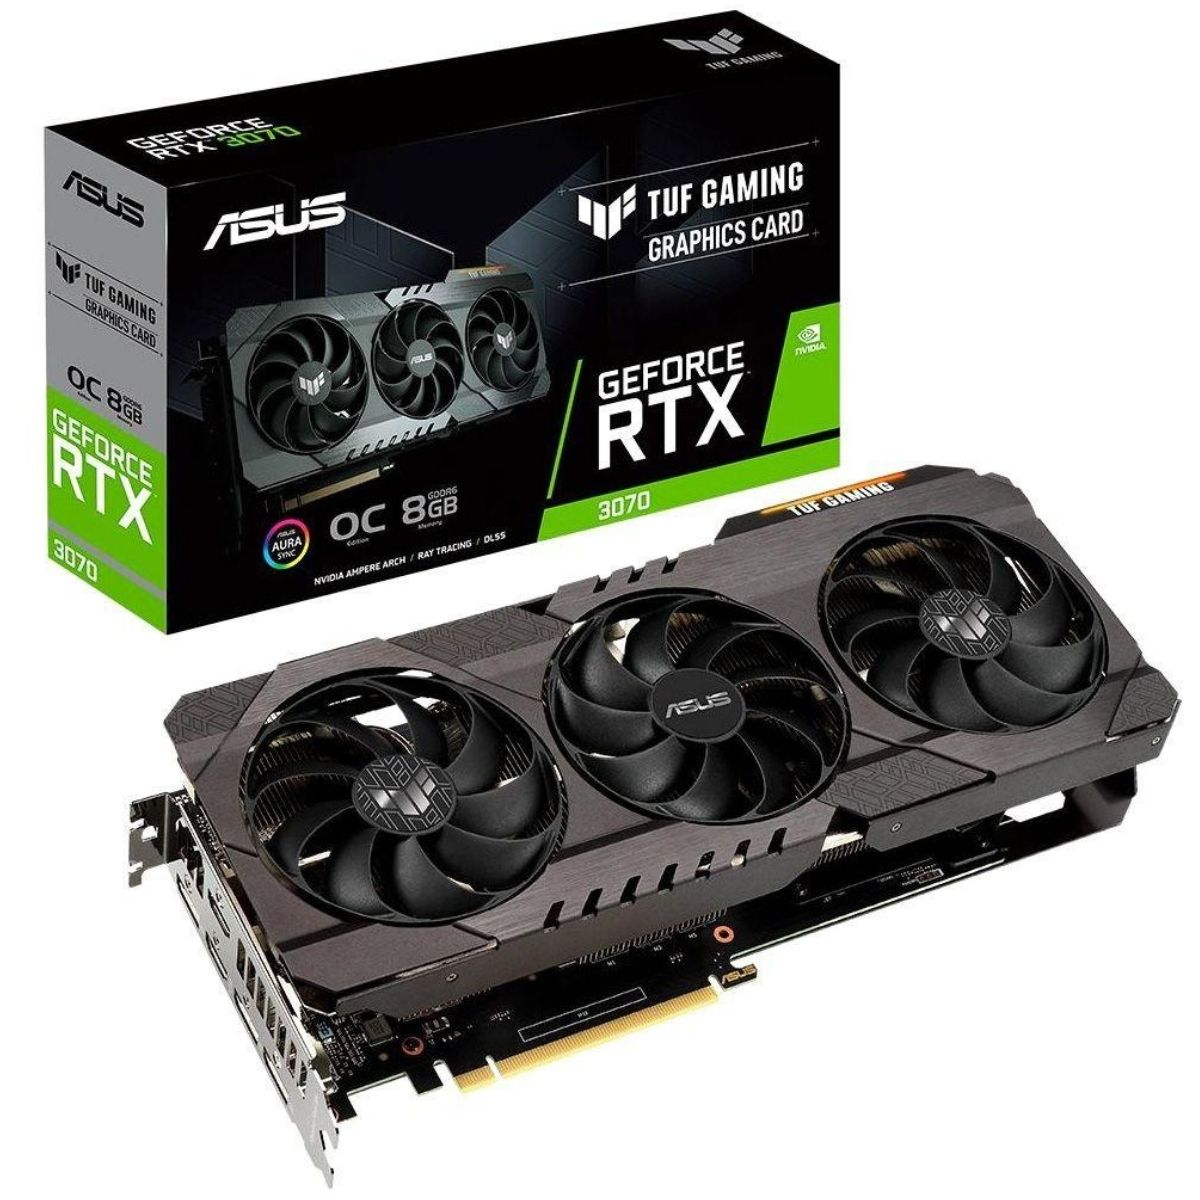 Placa de Vídeo Asus GeForce RTX 3070 8GB - GDDR6 256 bits TUF Gaming